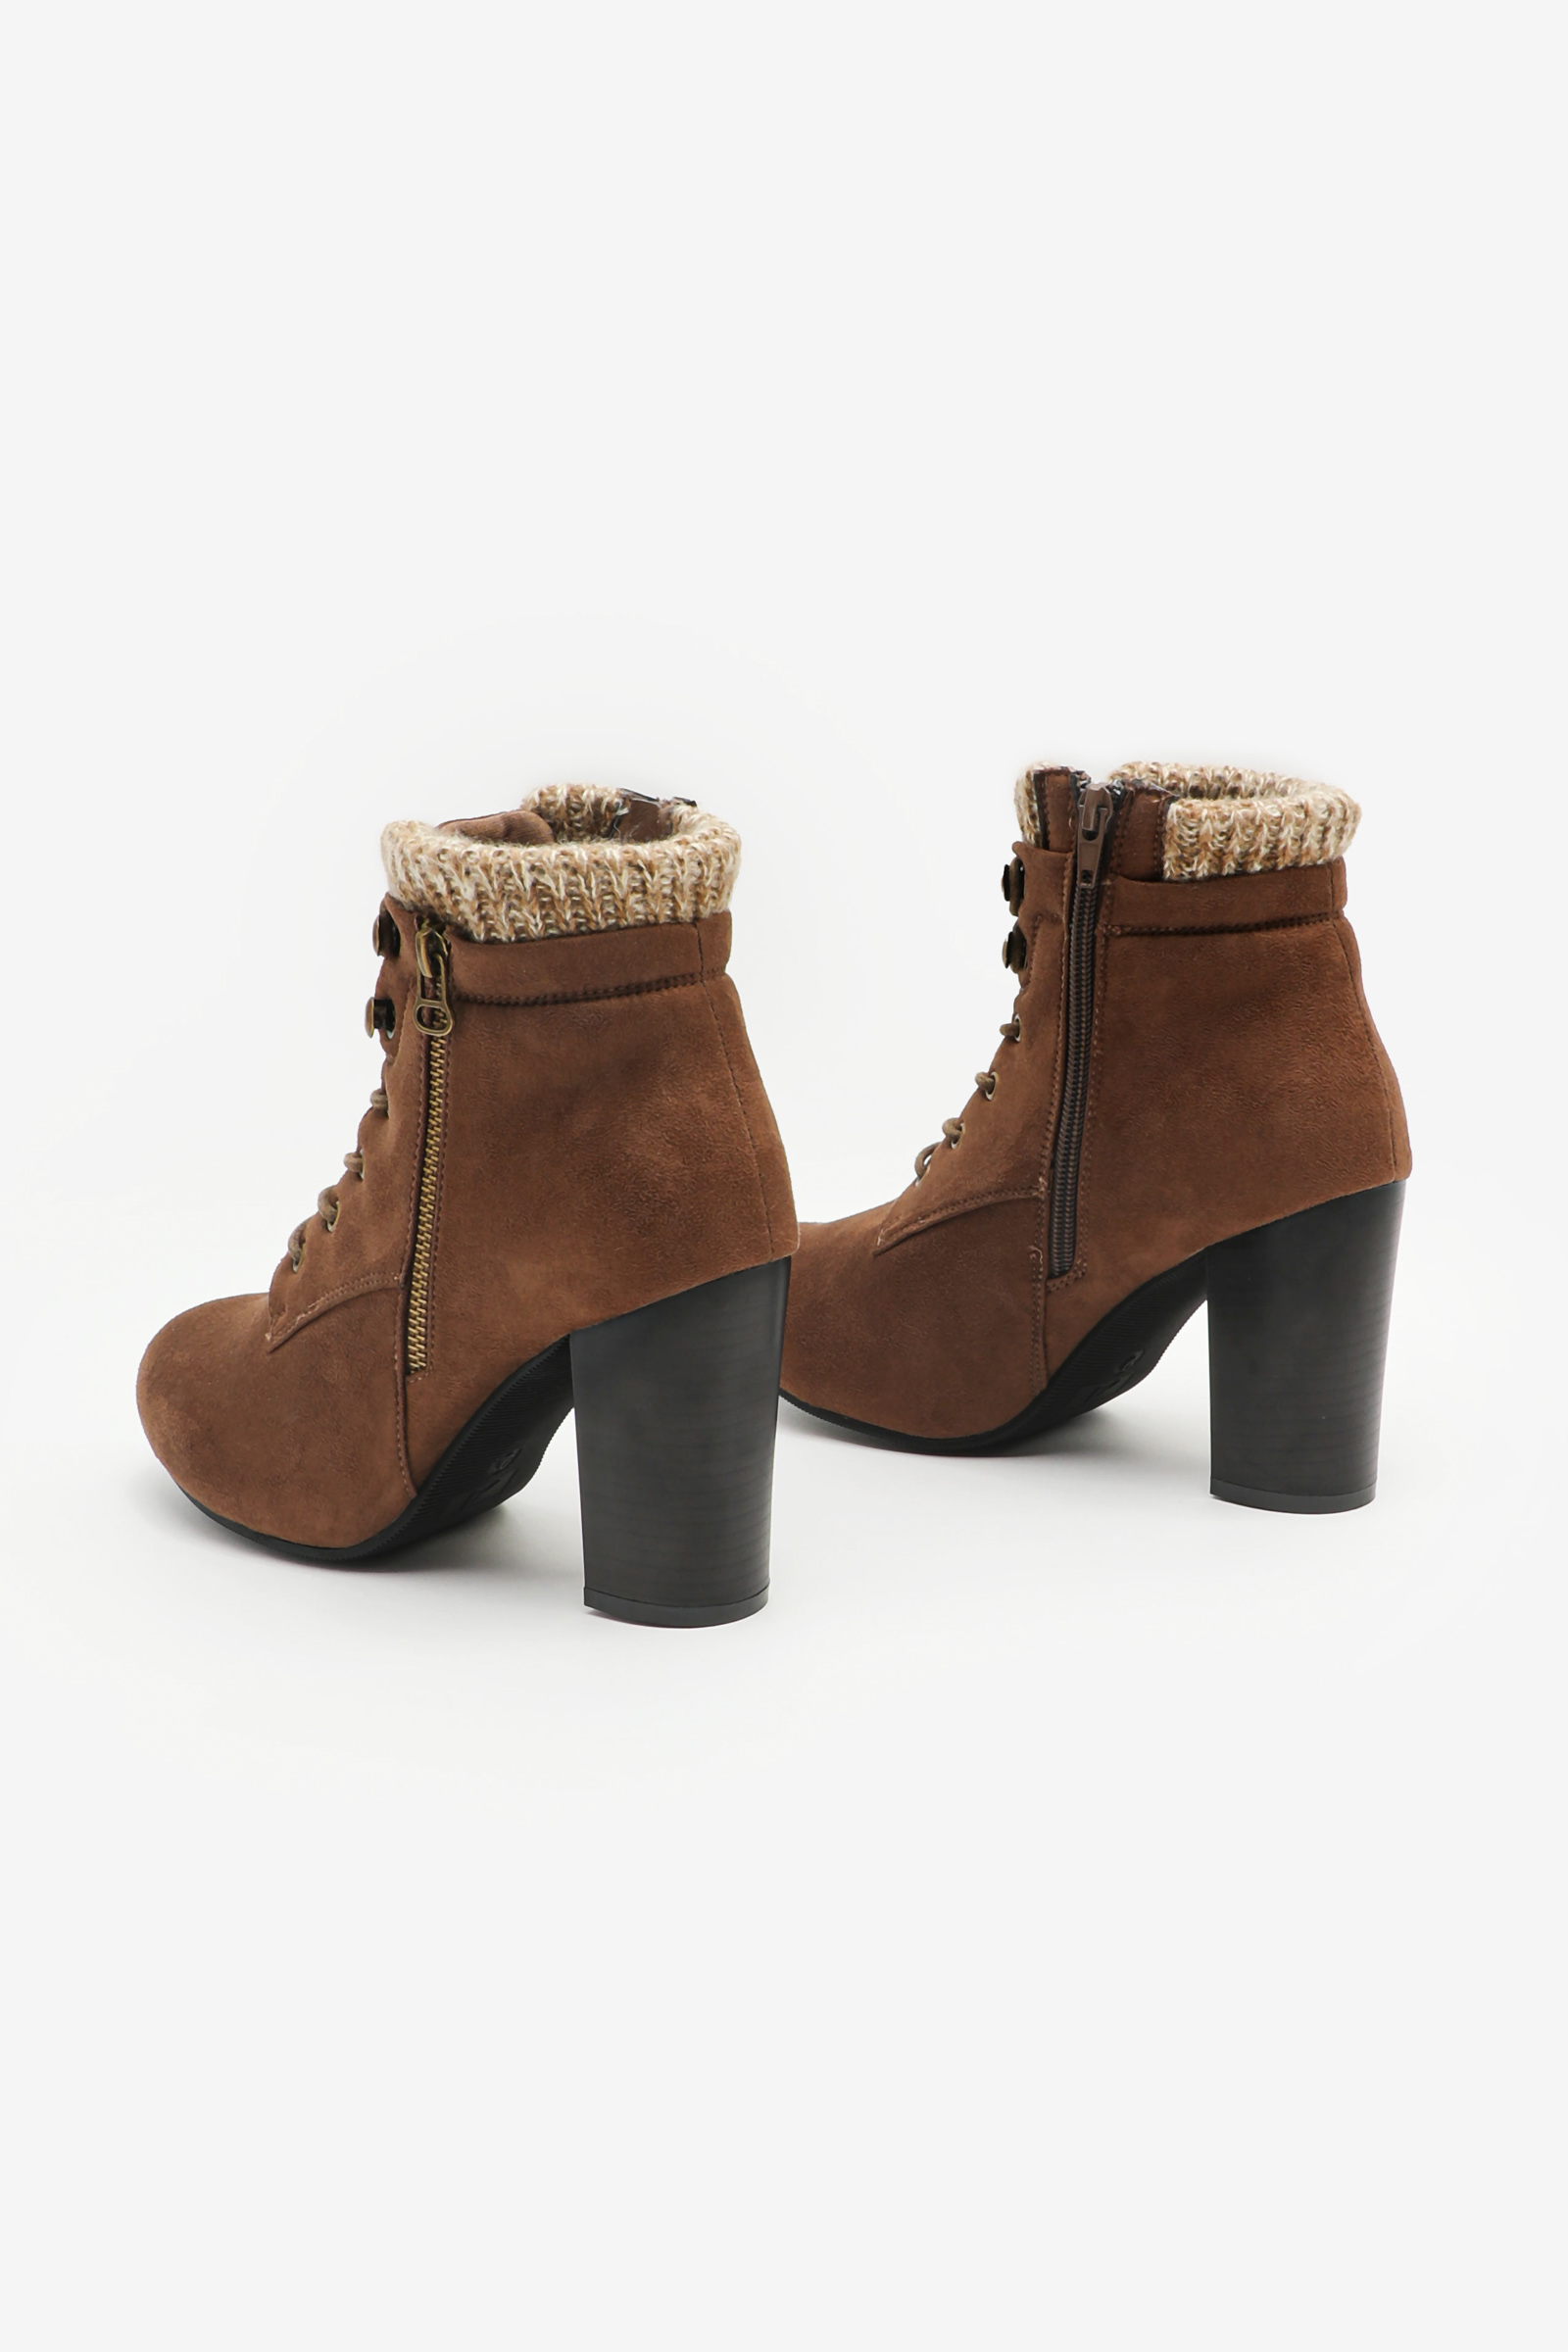 Bloc Heel Boots with Knit Collar